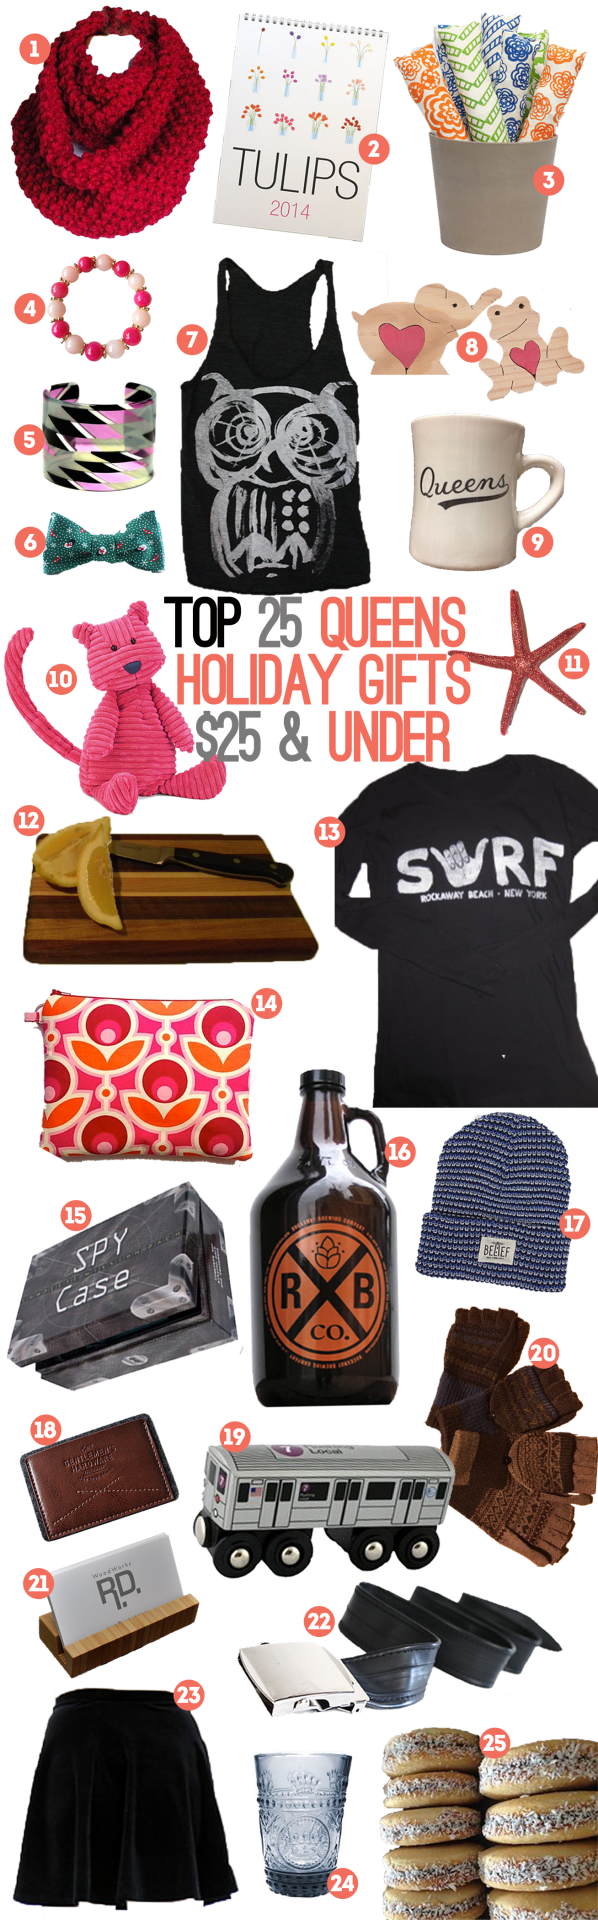 A round-up of our Top 25 Queens Holiday Gifts $25 and Under:      Design for You Infinity Scarf   - $22 Buy online  here .     2014 Wall Calendar   - $20 by  TuxPress  in Bayside.     Catnip Sticks   - $16 by  kitty jones  LIC-based store on Etsy.     Pink Jade Hudson & Stella Bracelet   - $25 Made by an LIC local, you can buy on  Etsy  or at  tiny-you  at either the  Sunnyside or LIC locations .     Lisa August Jade Cuff   - $25 Made in Woodside but you can buy at  Lockwood Shop  in Astoria  (map) .     Snowman Bowtie   - $25 (perfect for that ugly sweater party!) by  knotco , an Astoria-based store on Etsy.     HOO THAT Tank   - $25 from  queens77 .  My new favorite tank which is screen printed by hand.  Buy  online  or at  LIC Flea  this Sunday, Dec. 22nd 11am-6pm  (map) .     Wooden Heart Treasure Animals   - $4.75/each from  Slovak-Czech Varieties  in LIC, right across the street from tiny-you.  Lots of other animals and wooden toys handmade by the owner!  (map)      Native Roasters Queens Diner Mug   - $12 Buy on its own or in a coffee gift set at  Lockwood Shop  in Astoria  (map) .     Jellycat Plush Cordy Roy Pink Cat   - $18 Buy at  tiny-you  at either the Sunnyside or LIC shop location.  They also have really cute kids clothes and accessories  (two Queens locations) .     Glitter Starfish Clip   - $7 from  Fancy Things by Nancy  in Rockaway.     Cheese Board/Cutting Board   - $26 from  The Cutting Board Project .  Ok, so it's $1 over $25 but it's definitely worth it for the hand-crafted cutting boards from the makers of the Urban City Bike Shelves.     Rockaway Surf Shop Long Sleeve Tee  - $22.95  Rockaway Beach Surf Shop  has all of your surfing needs — and some great Rockaway Beach gear even for non-surfers! Closed Mondays  (map) .    iPad mini case cover  - $22 by  toteallaccessories , a Forest Hills-based store on Etsy.     Spy Case (Complete Mission Pack)   - $17 from the  NY Hall of Science  in Flushing Meadows Corona Park for your favorite aspiring scientist  (map) .     Rockaway Brewing Co. Growler   - $23 for beer and 64 oz. glass growler.  Buy at the  Rockaway Brewing Company  in LIC Friday-Sunday  (map) .     Lighthouse Beanie   - $20 from  Belief  in Astoria.  They're a skateshop but also have some really cool hoodies and winter gear  (map) .     Gentlemen's Hardware Leather & Felt Credit Card Holder   - $25 at  Matted LIC   (map) .     Wooden 7 Train (Flushing Local)  - $13 Get your favorite train line (N,Q,7) for your favorite little one at  Raising Astoria   (map) .     Fingerless Gloves by the  Nomad Truck    - $22 Buy at  LIC Flea  this Sunday, Dec. 22nd 11am-6pm  (map) .    Bamboo handmade business card holder  - $23 by  woodworksRD , a Corona-based shop on Etsy.     Recycled Bike Tube Belt   - $20 from  Vaya Bags  in Ridgewood  (map) .     Velvet Skater Skirt   - $22 from  Diva New York .  Although the clothes are typically clubby, you can find some good, cheap pieces here if you look.  This skirt is perfect for New Year's with some tights and a sparkly top!  (locations in Astoria, Jackson Heights, & Forest Hills) .     Louis Hi-Ball Glass   - $10/each from  LIC: living .  Stop in today, December 14th for 15% off storewide  (map) .     Buenos Angies Argentinian Alfajores  - $12 for holiday tin of 4 large  coconut alfajores.